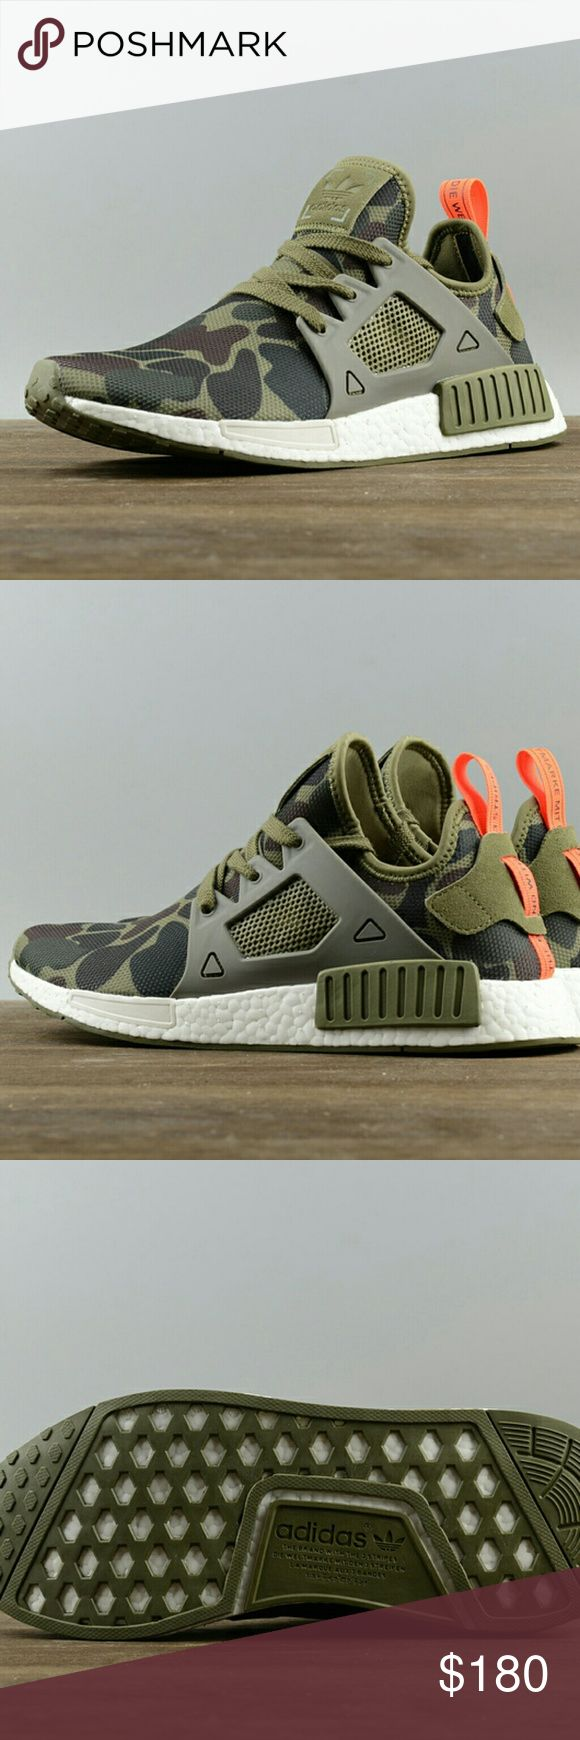 Authentic Adidas NMD  boost with original box Size US 4-13 available. adidas nmd  boost are authentic best retail  version shoes with real boost and original box and  receipts,Everything of them are the same as originals in adidas  store and have highest performance cost.all are real shots, what  you see is what you get. We have many customers are satisfied with  the quality very much. Please contact us to get $30 off before  place the order, WhatsAPP: +86 17081930391 Kik: topsneakersseller…